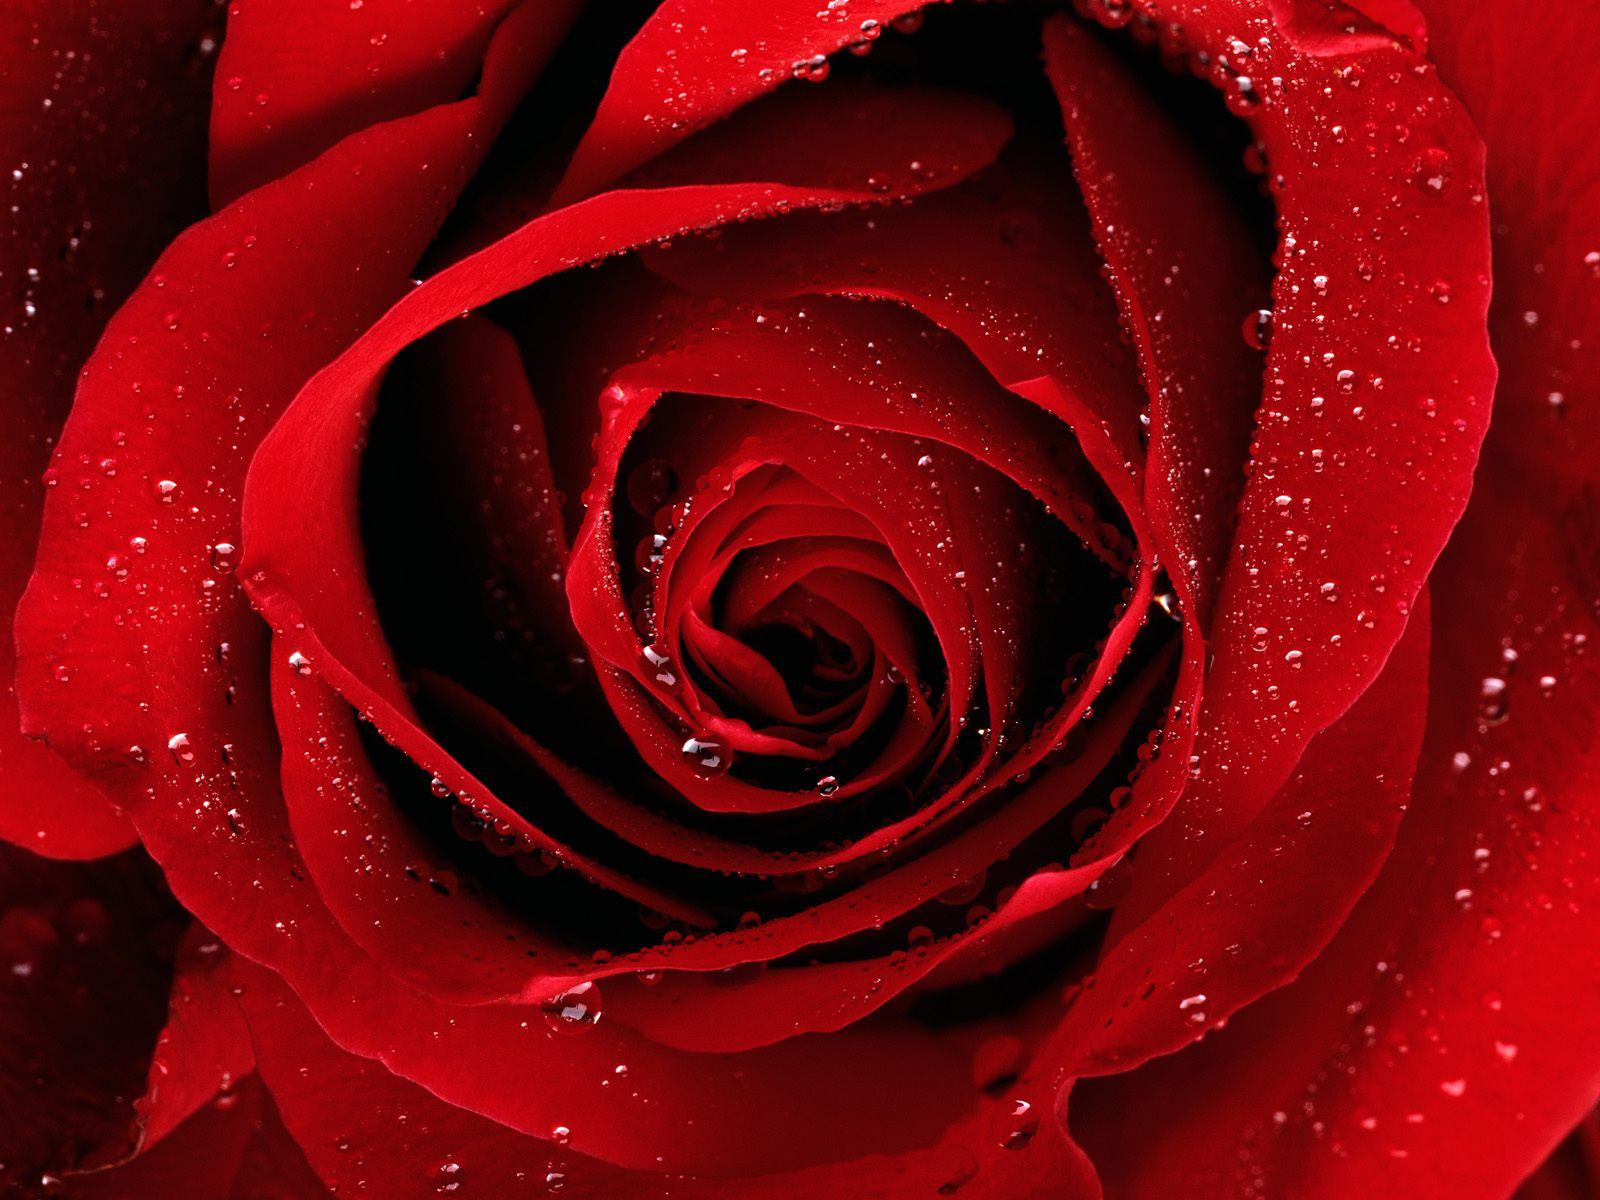 red%2Brose Wallpaper red rose garden